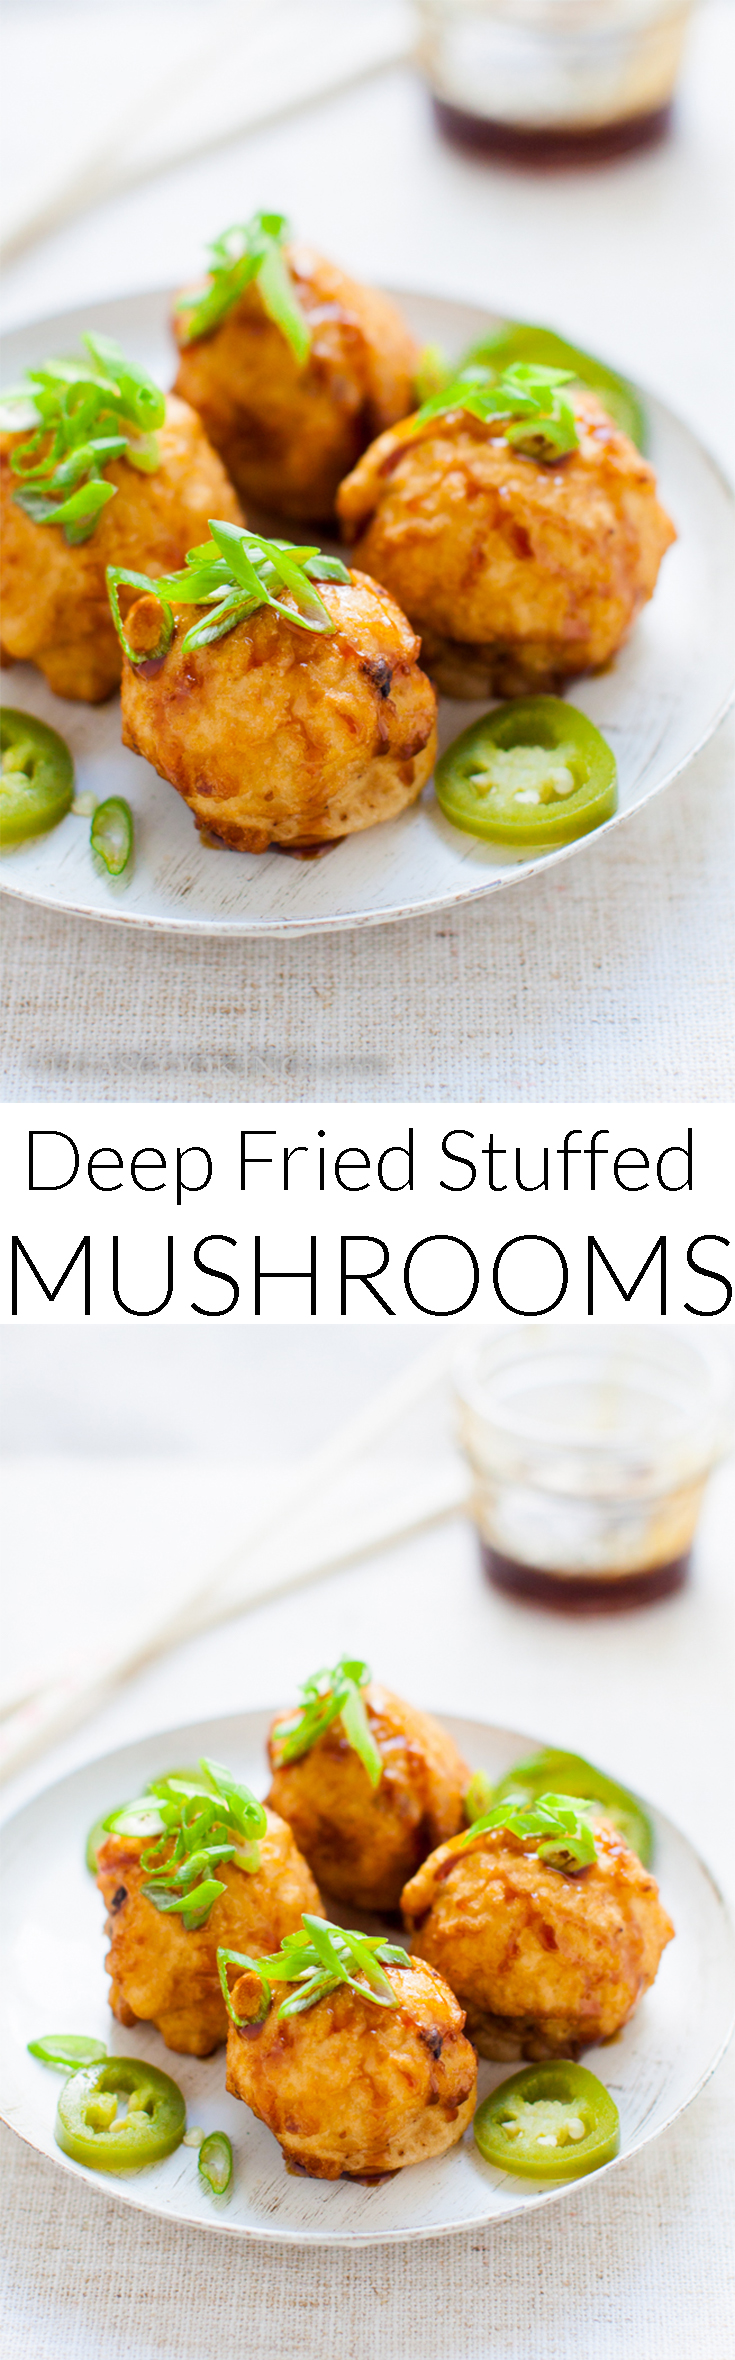 Deep Fried Stuffed Mushrooms Recipe..